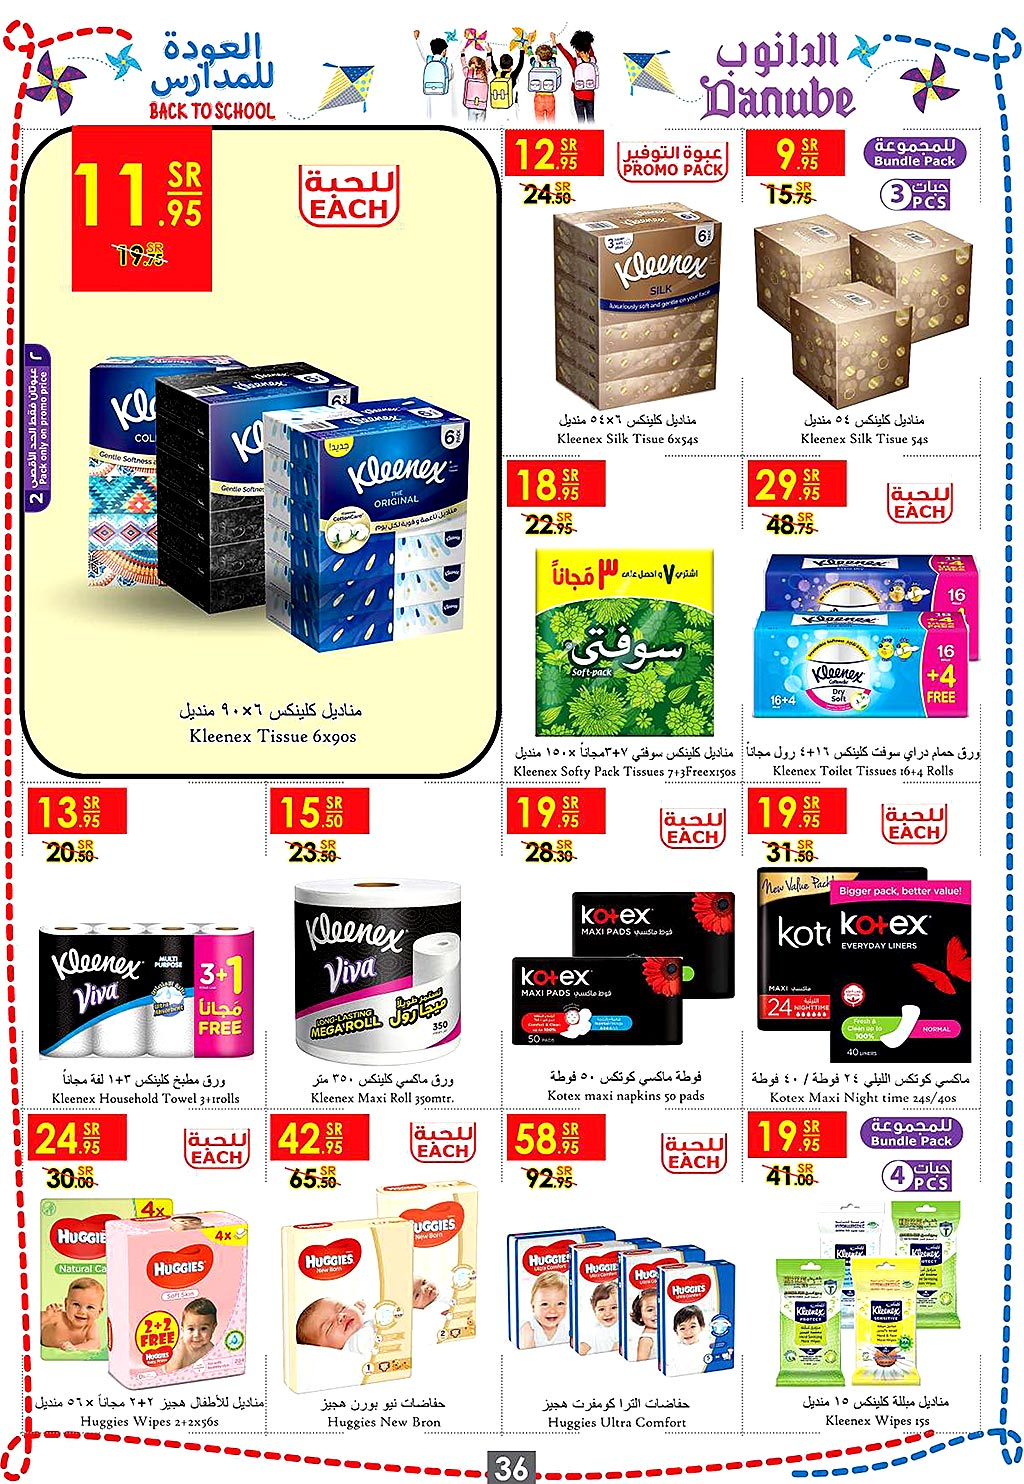 danube offers from 7aug to 20aug 2019 page number 35 عروض الدانوب من 7 أغسطس حتى 20 أغسطس 2019 صفحة رقم 35